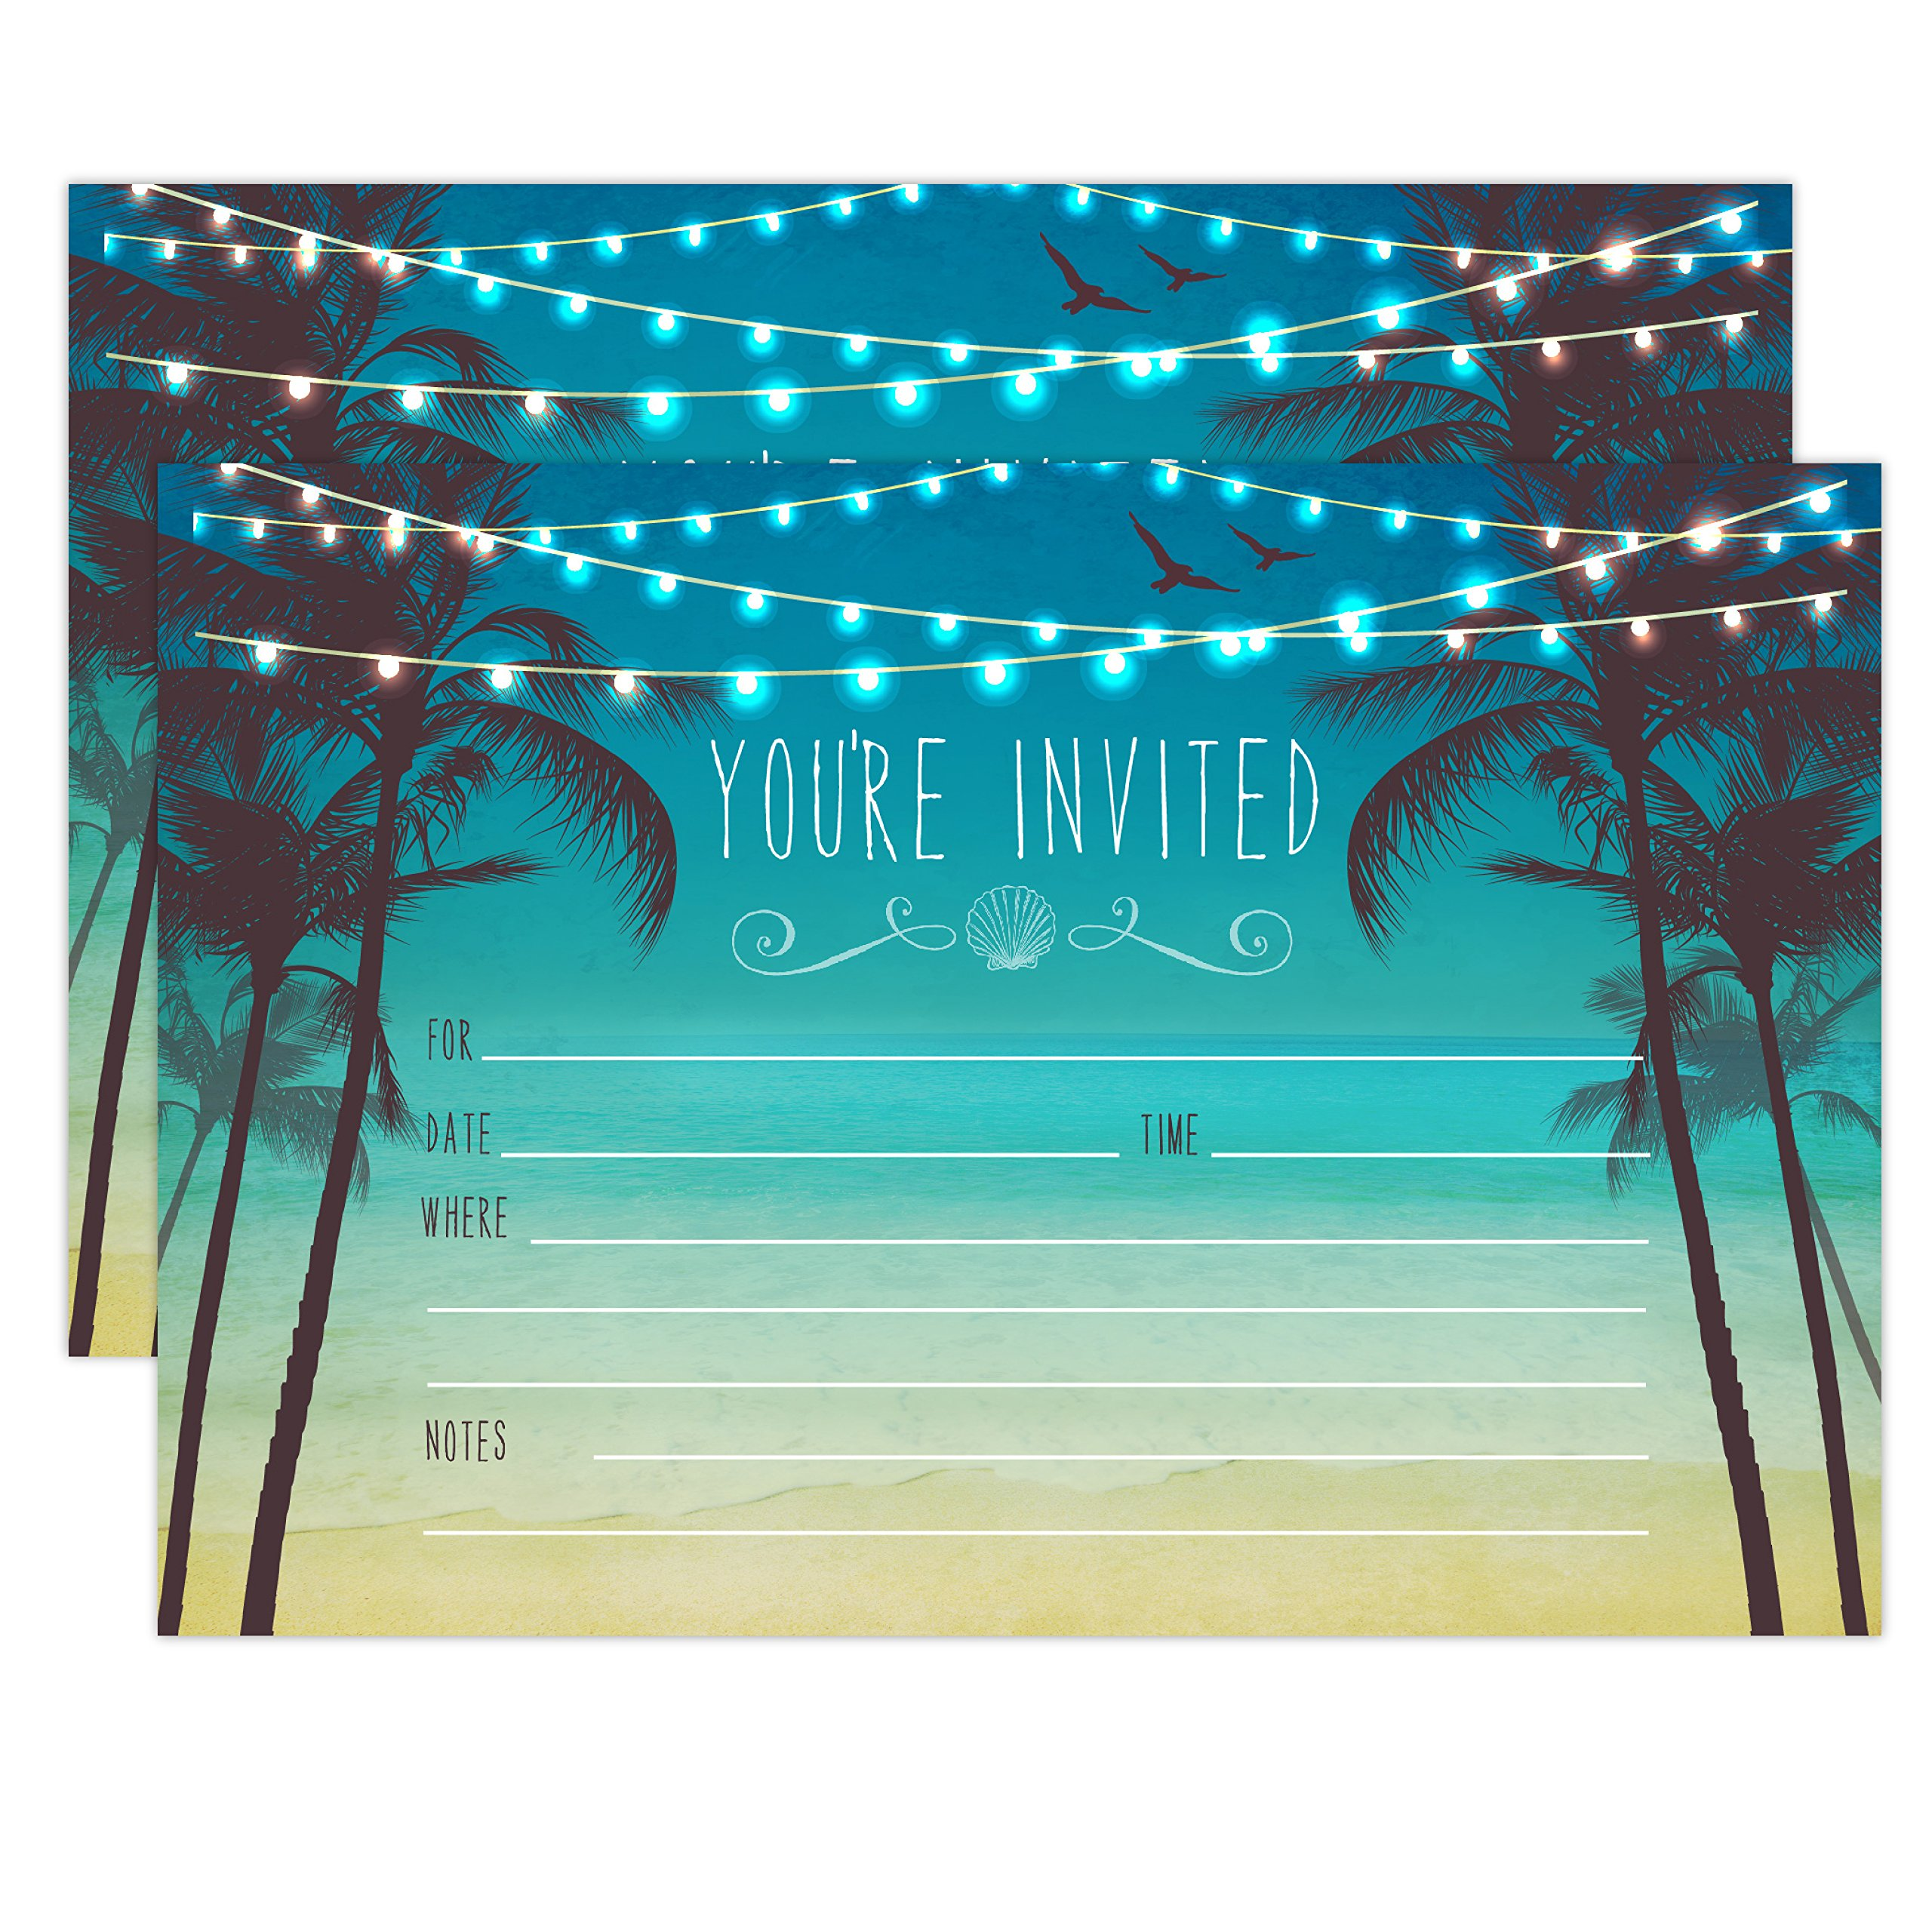 Beach Palm Tree Invitations, Nautical Invitations, Rustic Elegant invites for Wedding Rehearsal Dinner, Bridal Shower, Engagement, Birthday, Bachelorette Party, Baby Shower Invites by Your Main Event Prints